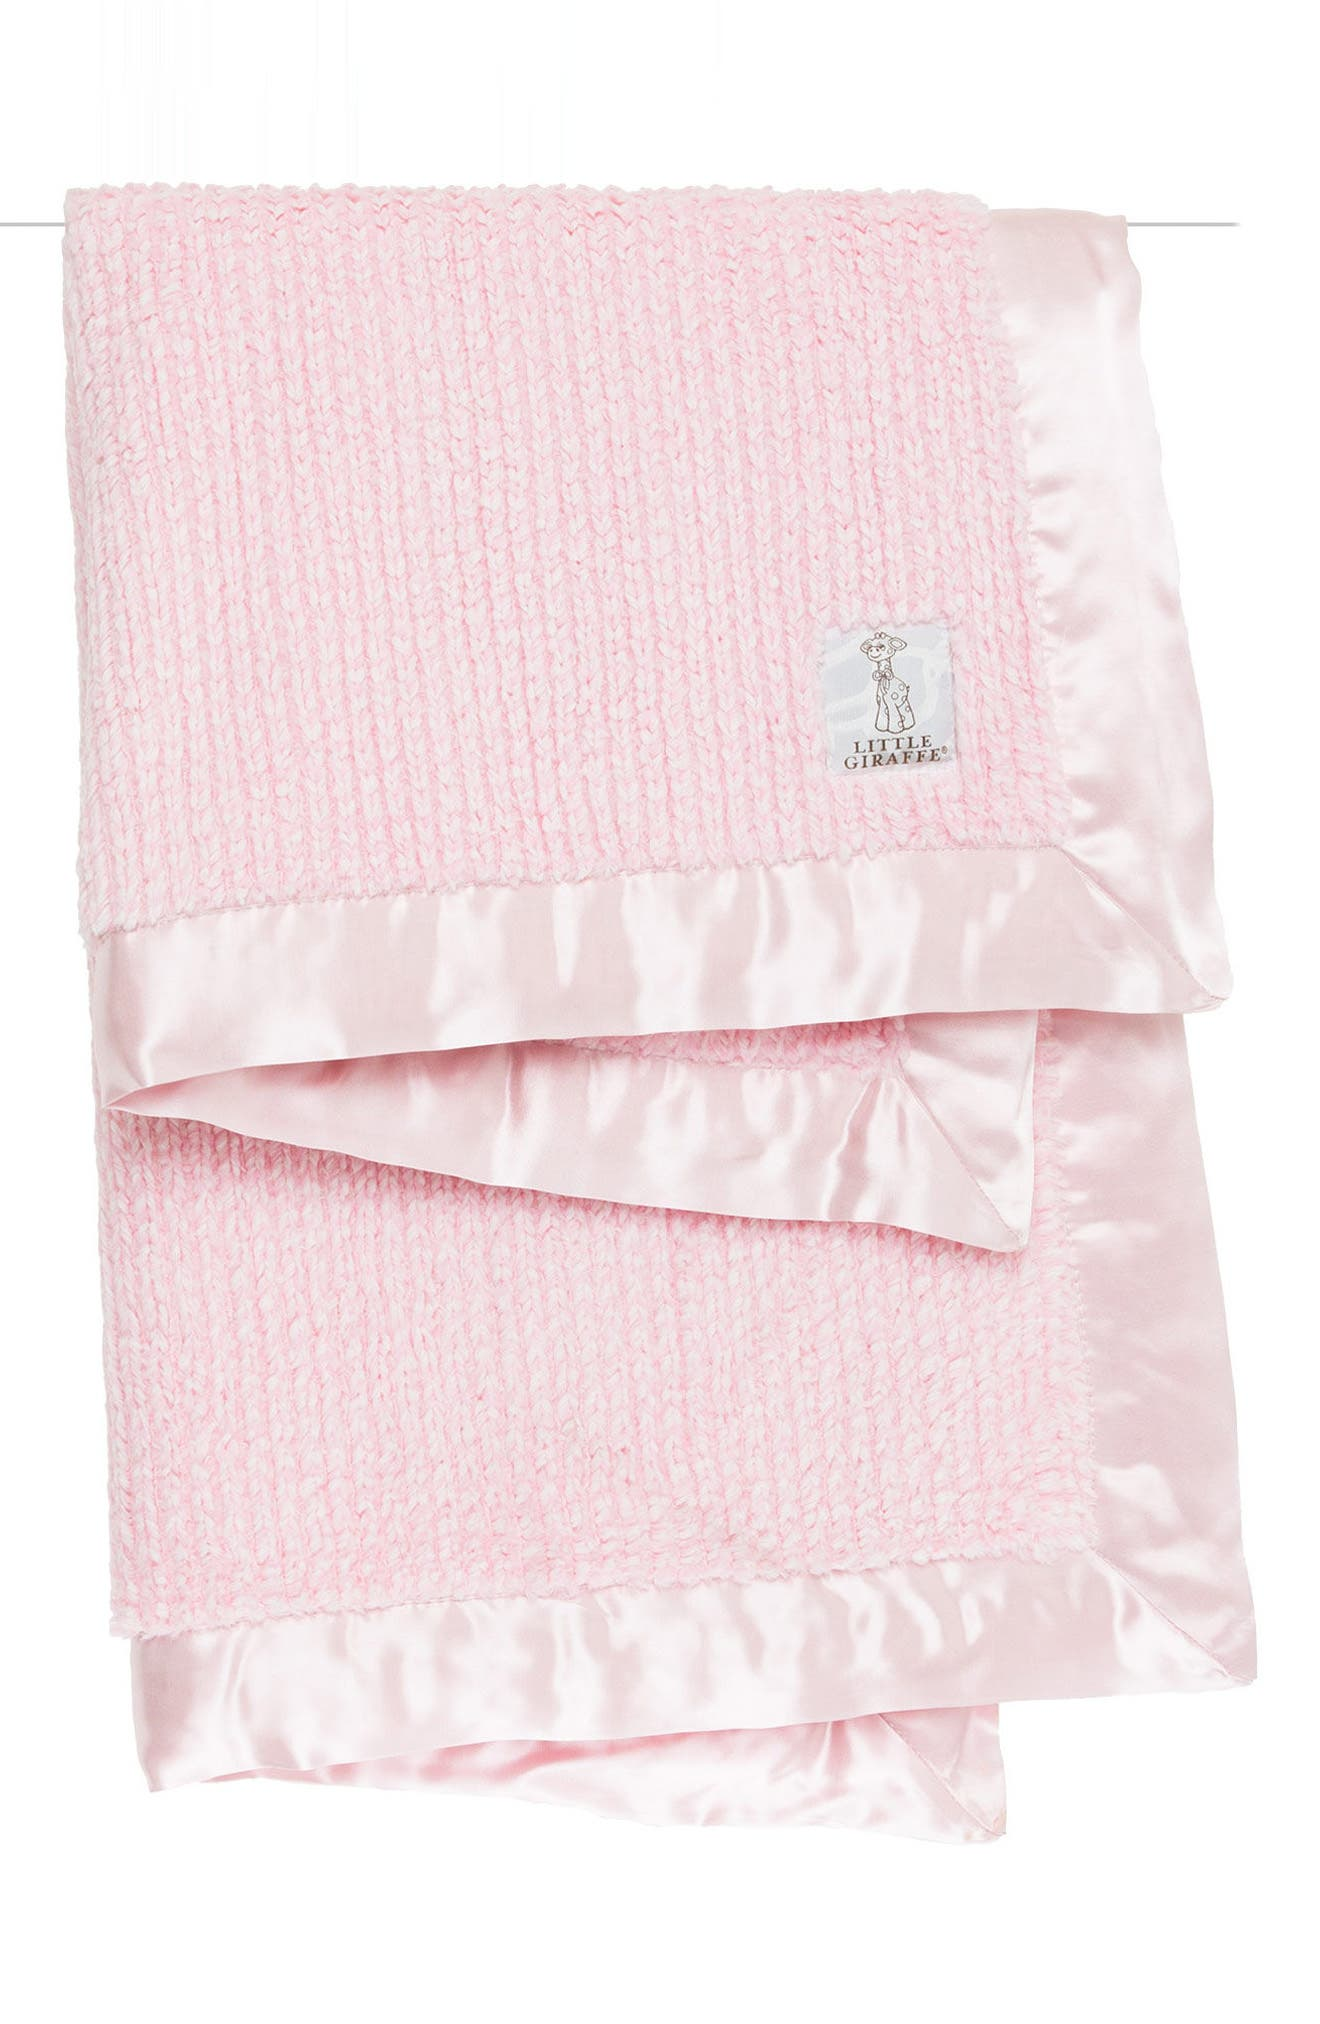 Luxe Herringbone Blanket,                         Main,                         color, PINK